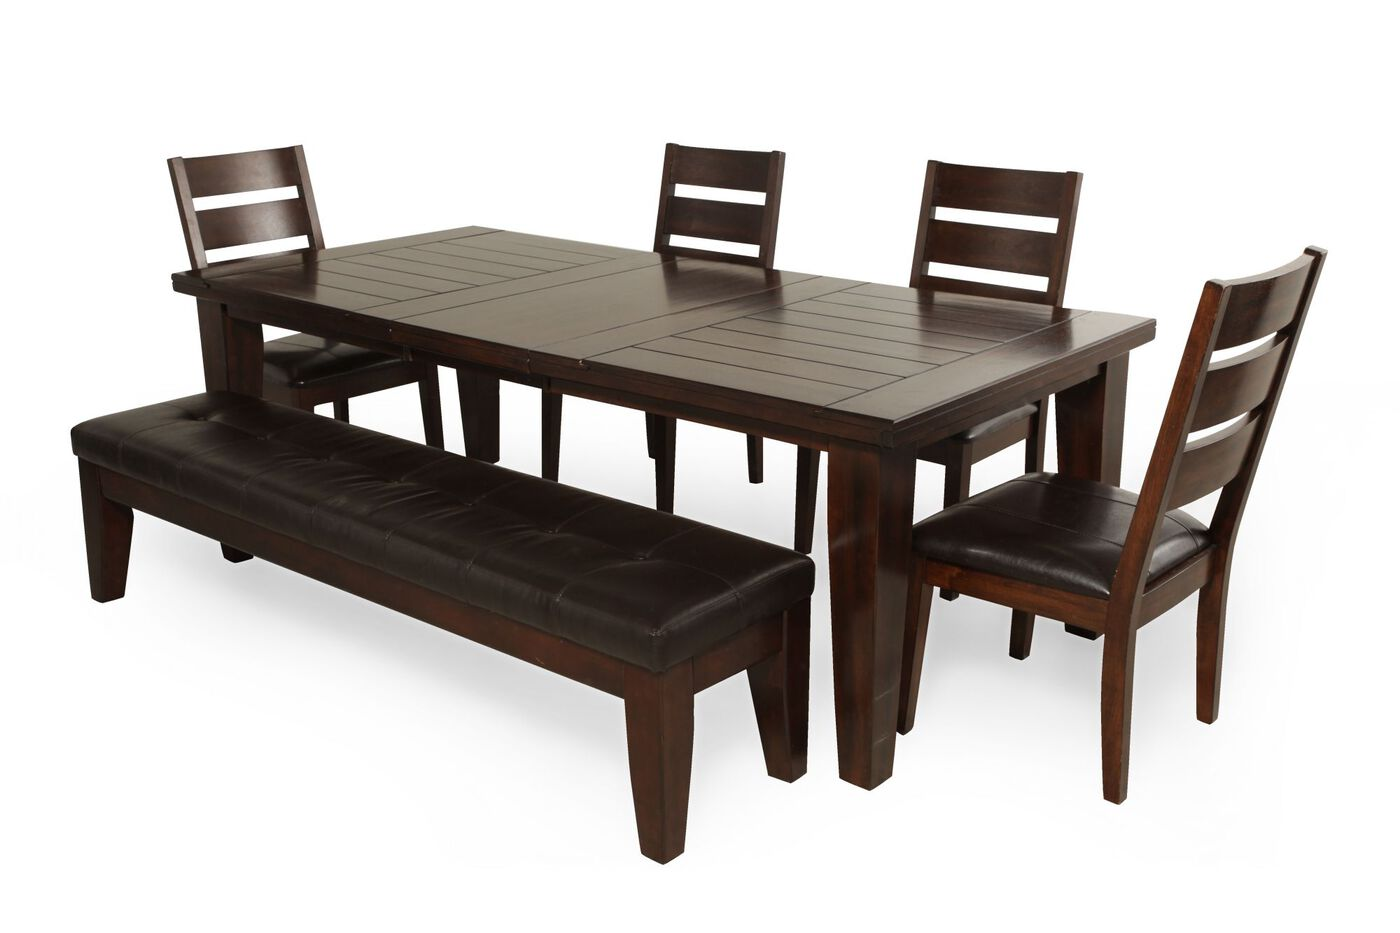 Mathis Brothers Dining Room Table home decor Xshareus : ASH D4425E0476PC from www.xshare.us size 1400 x 933 jpeg 79kB